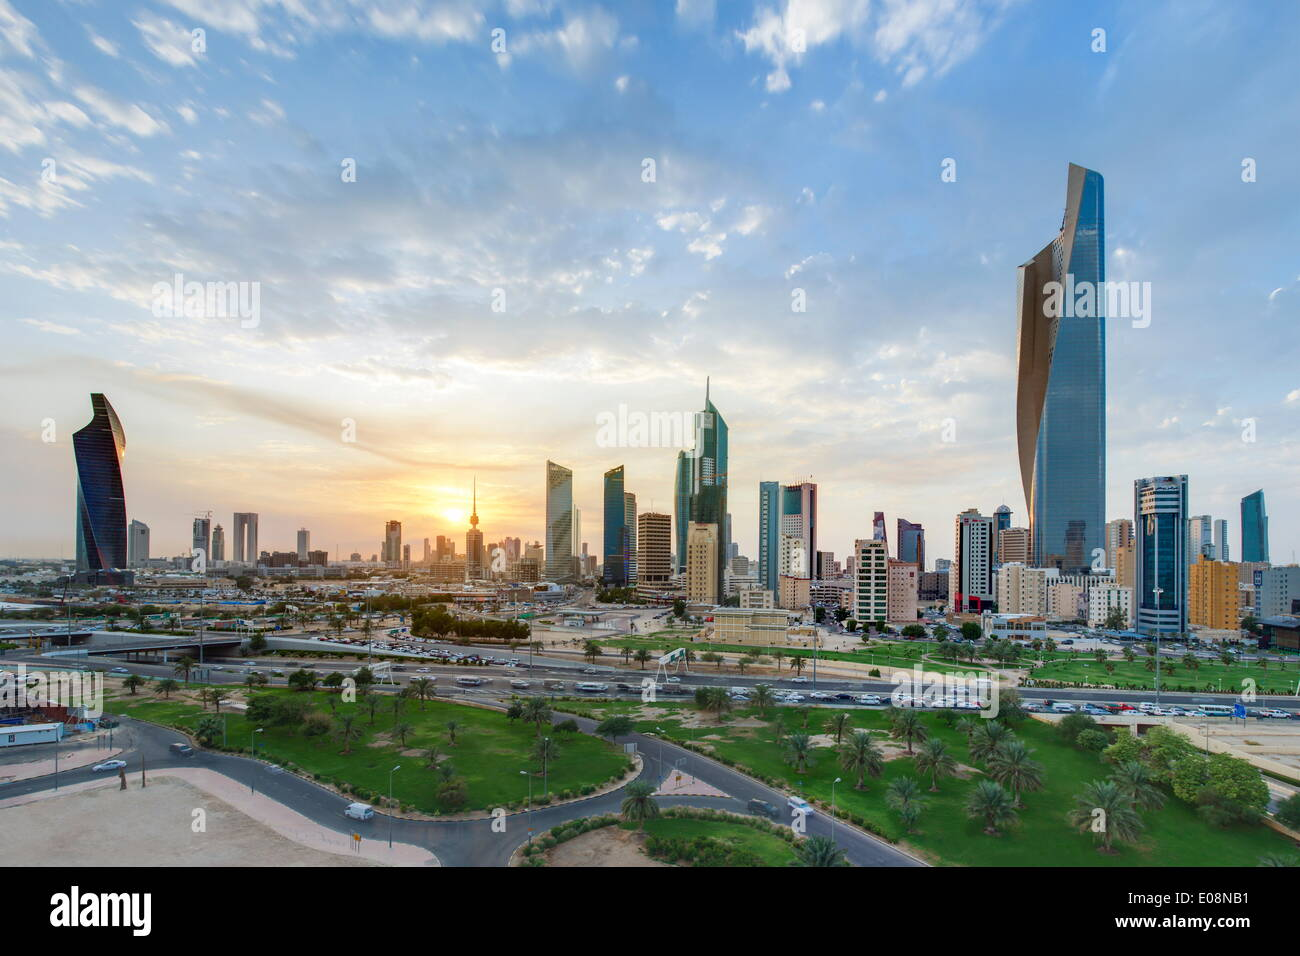 Elevated view of the modern city skyline and central business district, Kuwait City, Kuwait, Middle East - Stock Image